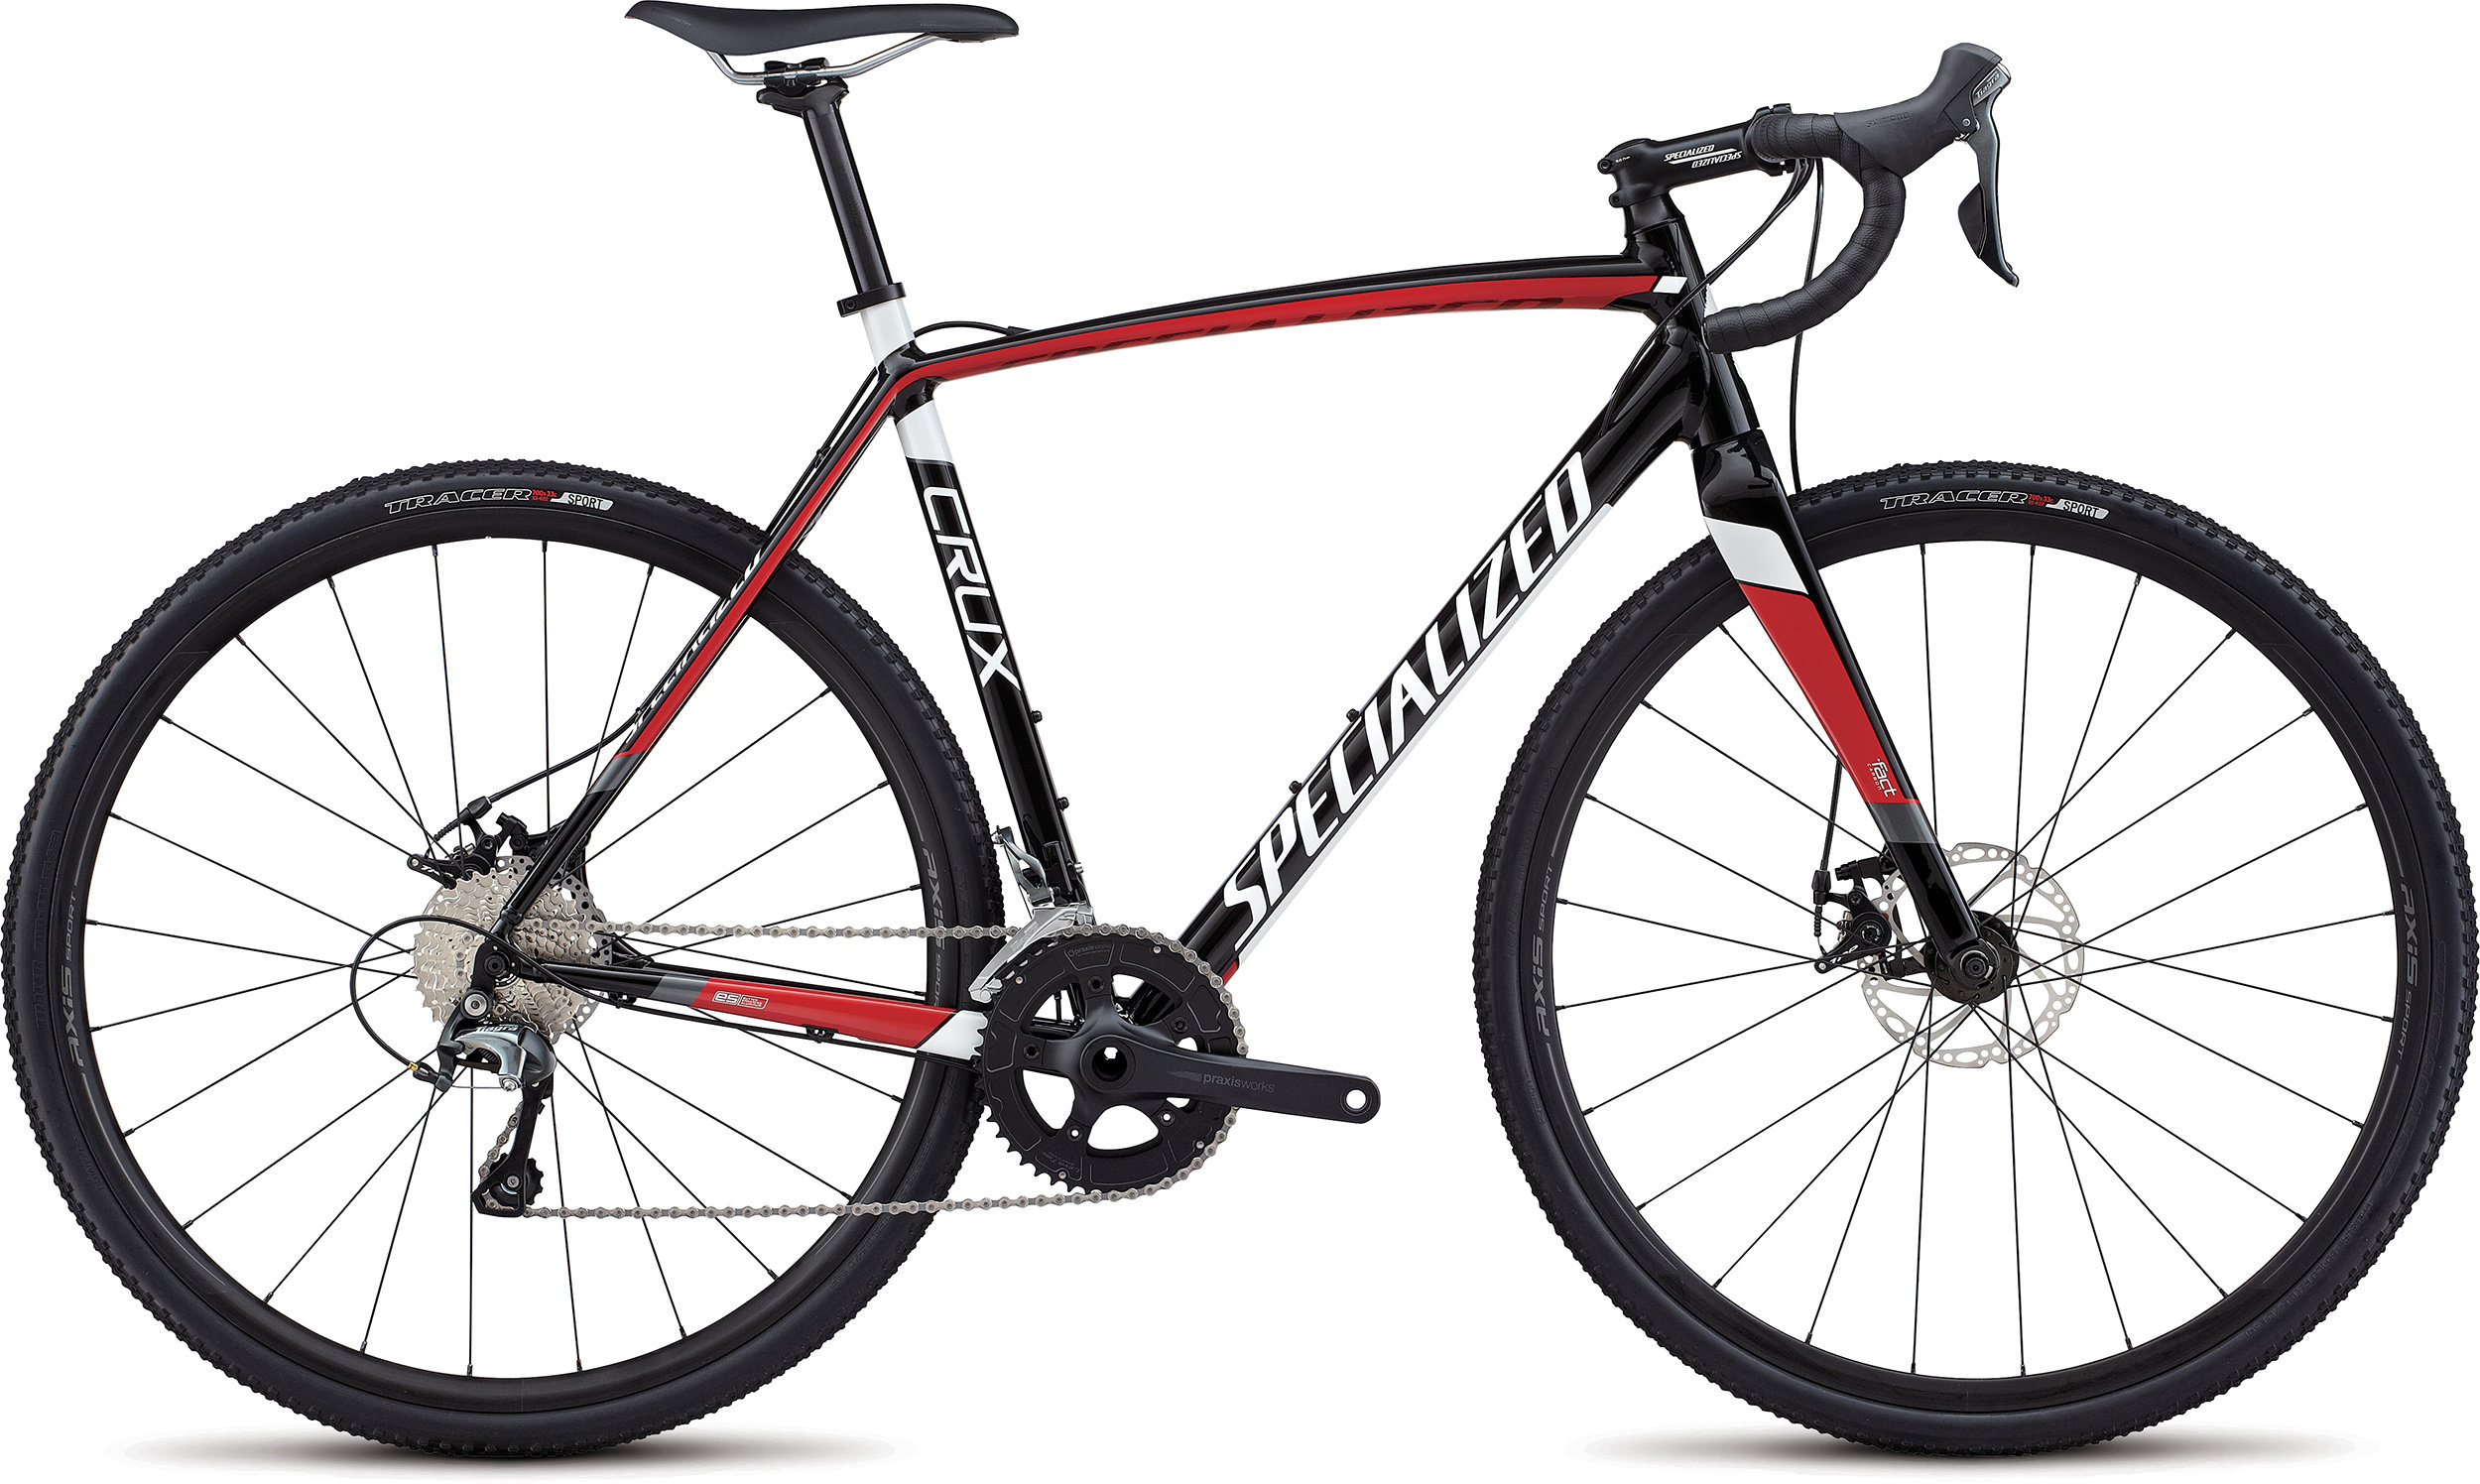 SPECIALIZED CRUX E5 TARBLK/FLORED/METWHT 54 - SPECIALIZED CRUX E5 TARBLK/FLORED/METWHT 54